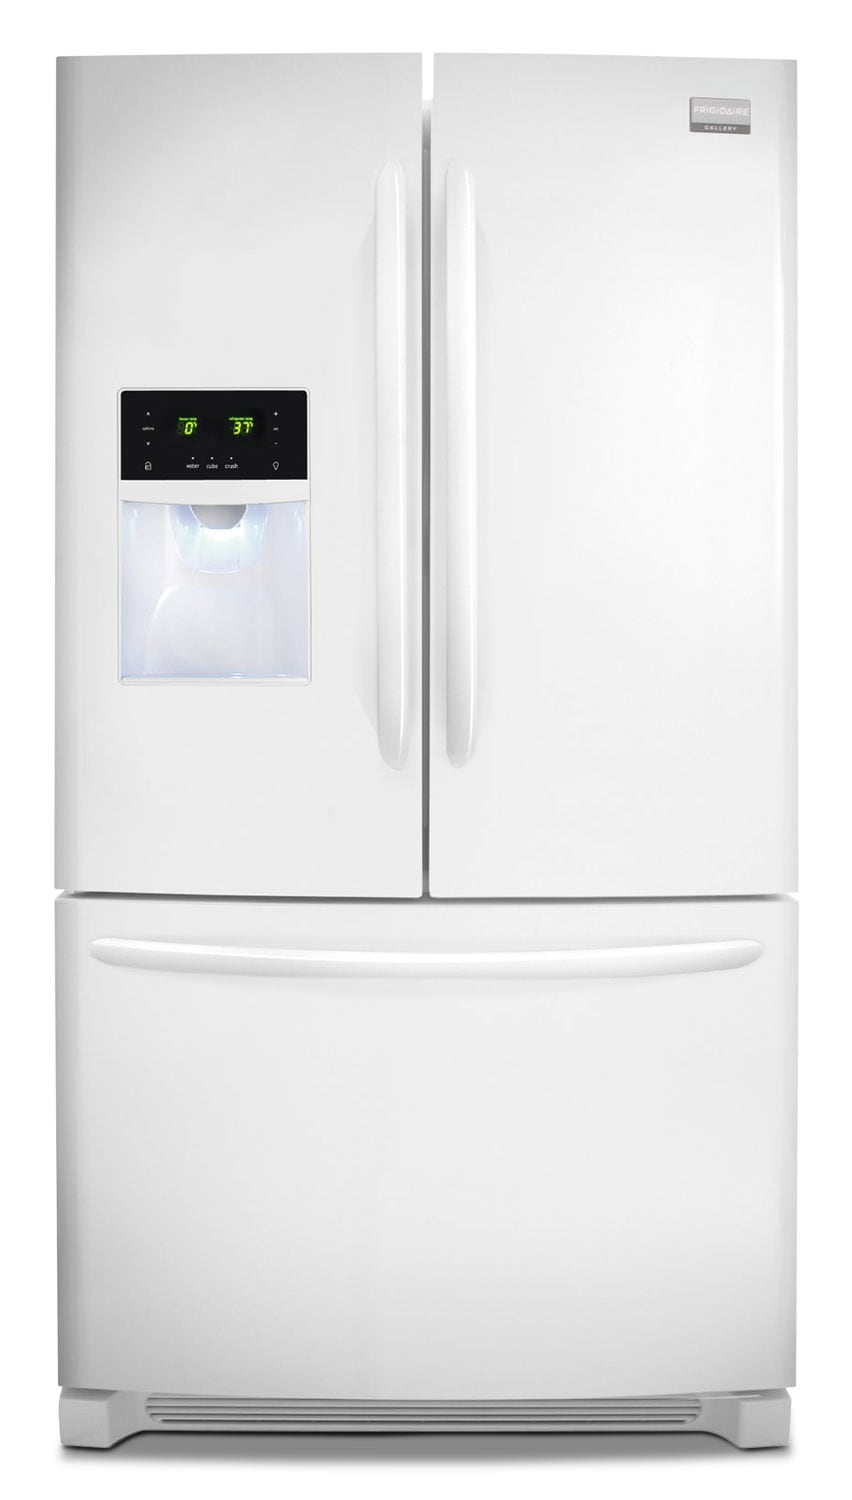 Frigidaire Gallery Pearl White French Door Refrigerator (27.7 Cu. Ft.) - FGHB2866PP